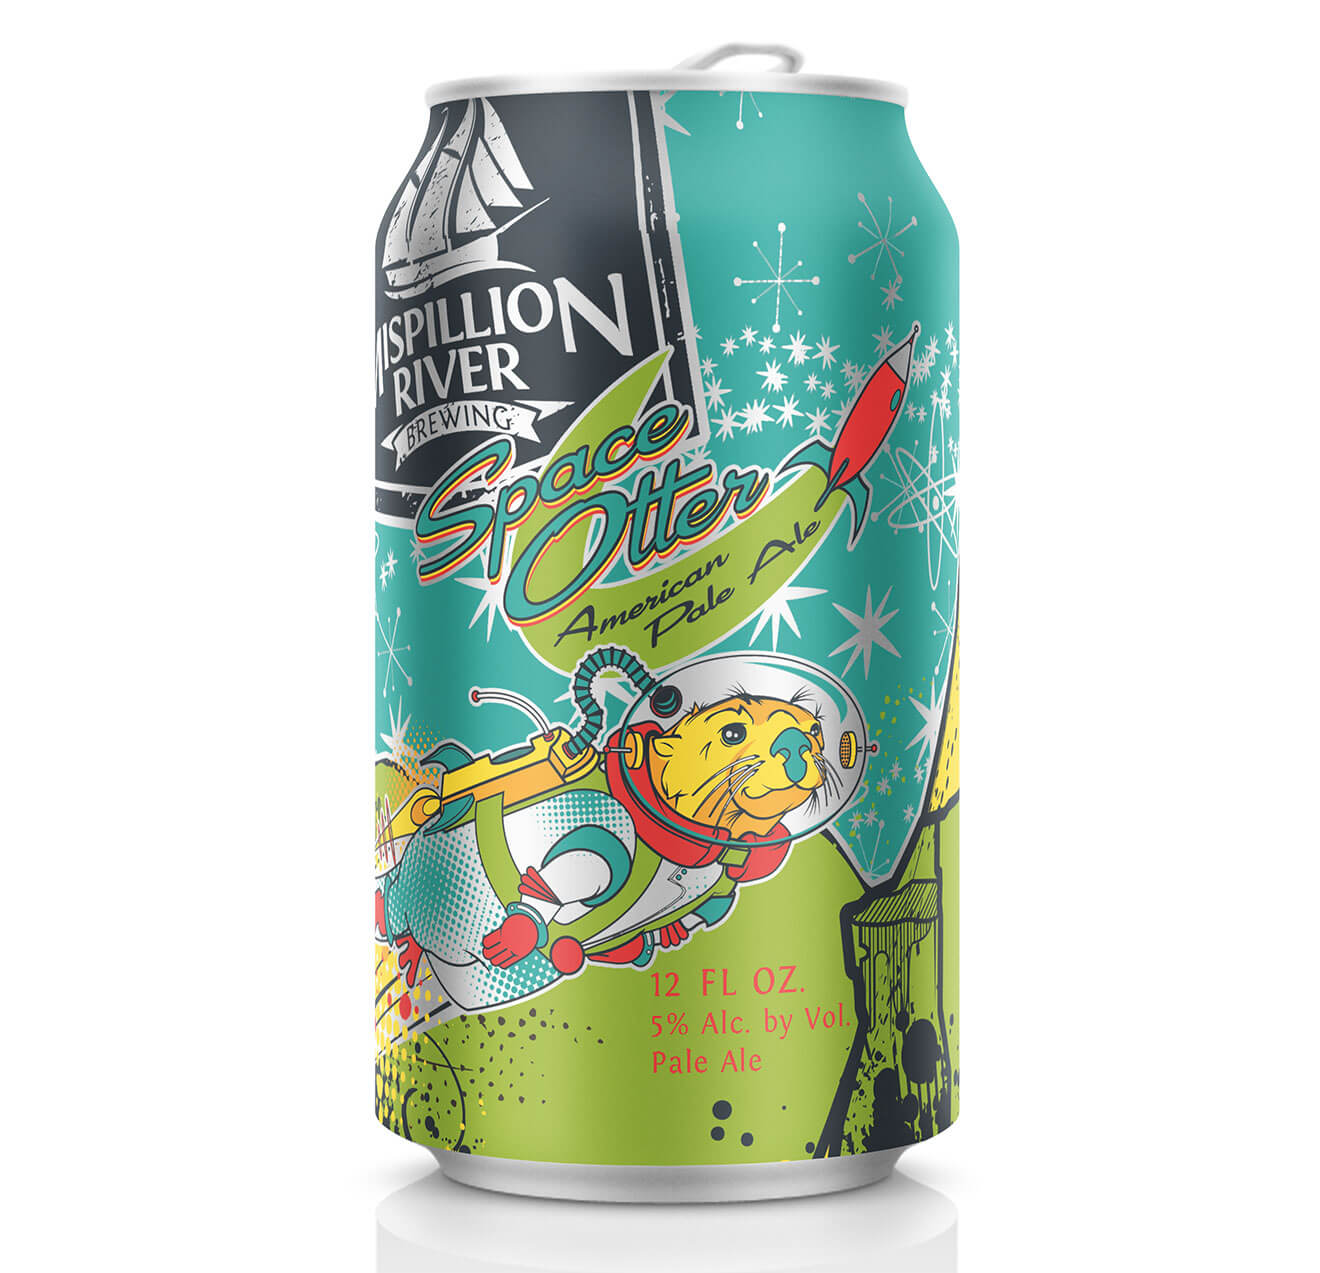 Mispillion River Brewing Space Otter, can on white